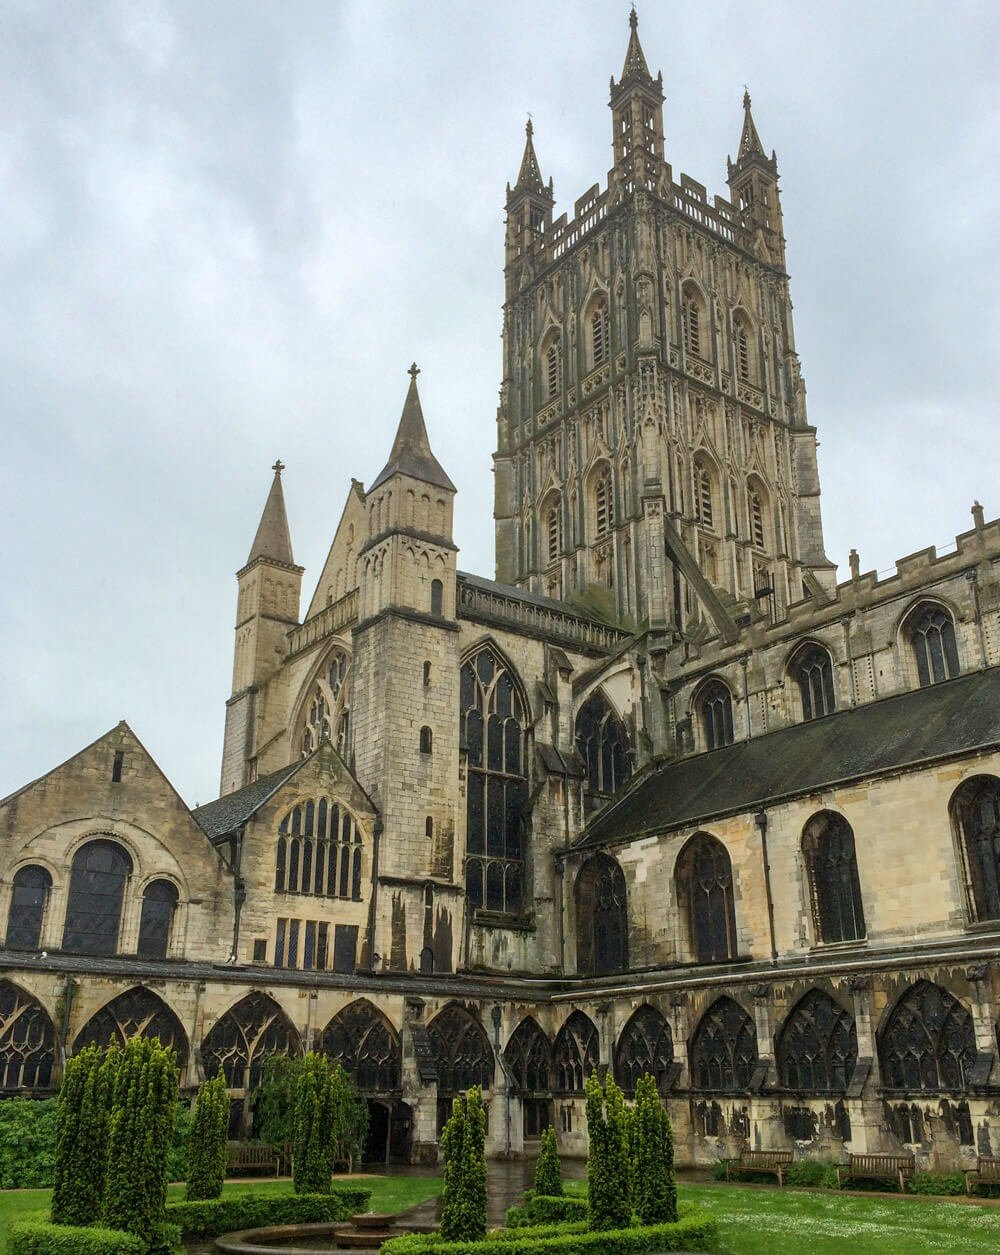 Harry Potter movie locations - Gloucester - JRMI